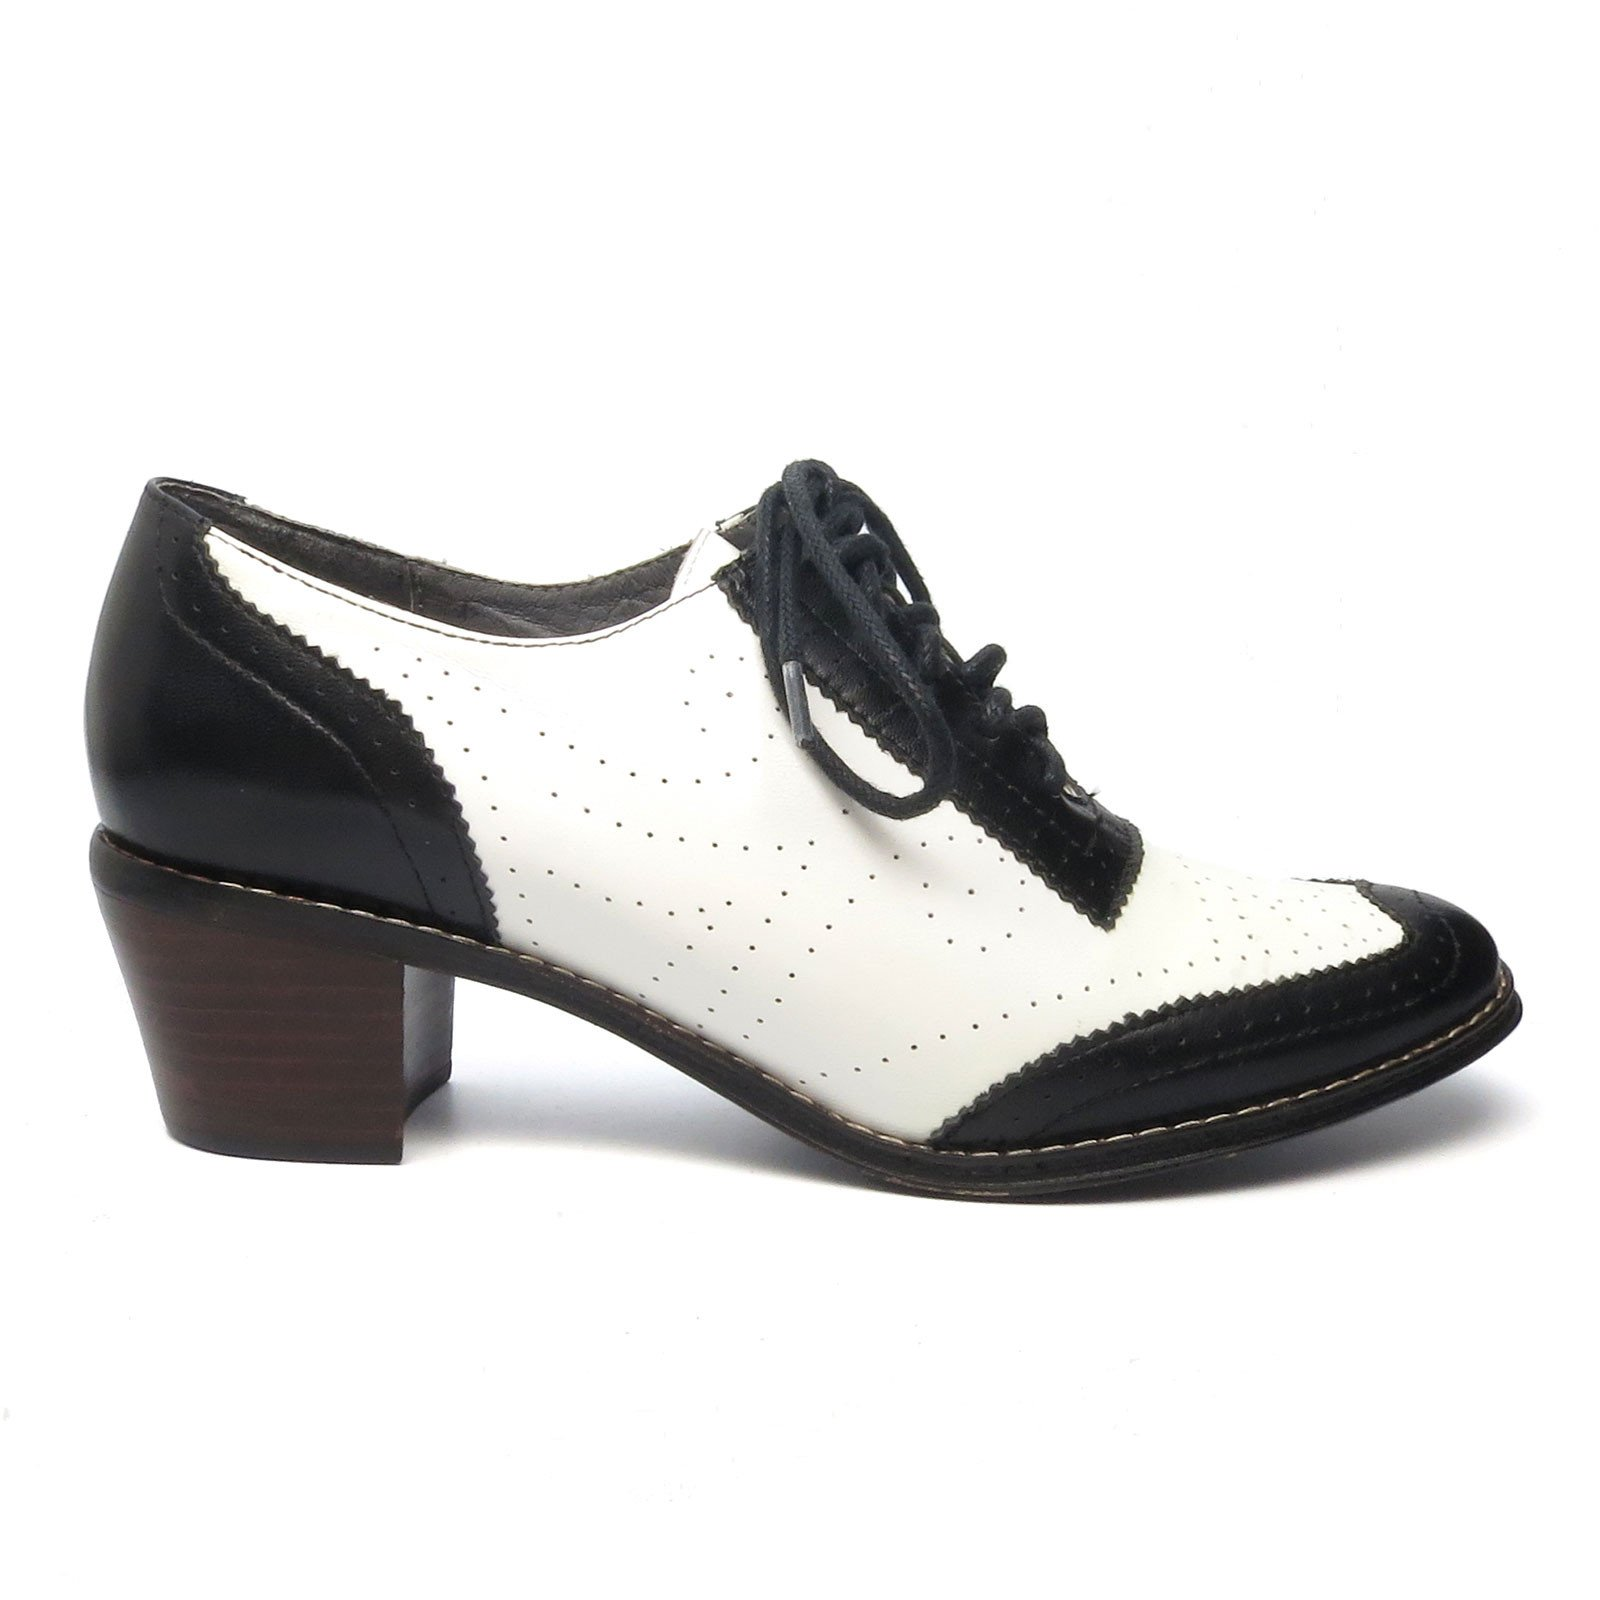 We Young Uns Called These Granny Shoes In The 1950 S Aw Aris Allen Women S Black And White 1950s White Oxford Shoes Oxford Shoes Vintage Oxford Shoes